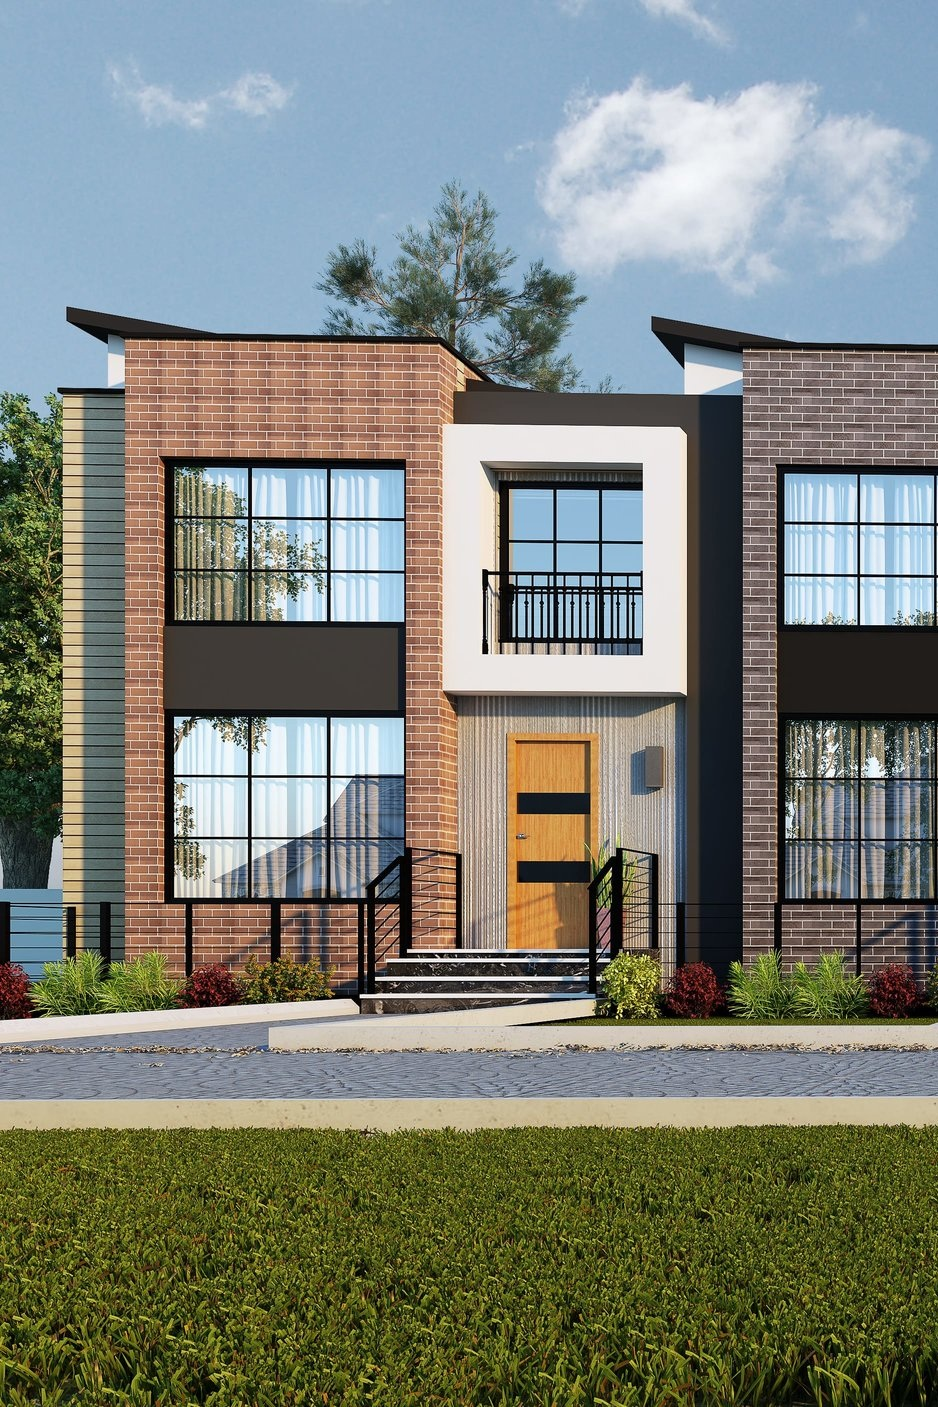 SOLD -Tarmac I - 1693 sq.ft. w/garage suite (Corner unit)at $640,000 - AVAILABLE with Possession: December 2019- Units facing the Public Pathway- Modern-contemporary design- 10' ceiling- Double garage 22' deep to fit your SUV/Pickup truck- Quartz/granite counter tops- Upgraded kitchen with big island- Loft on 2nd floor- Geo-thermal heating and cooling, HRV, Smart room thermostat**Price includes lot, house, landscaping, deck, and appliance credit, and GST, comes with a 2-bedroom garages suite & unfinished basement